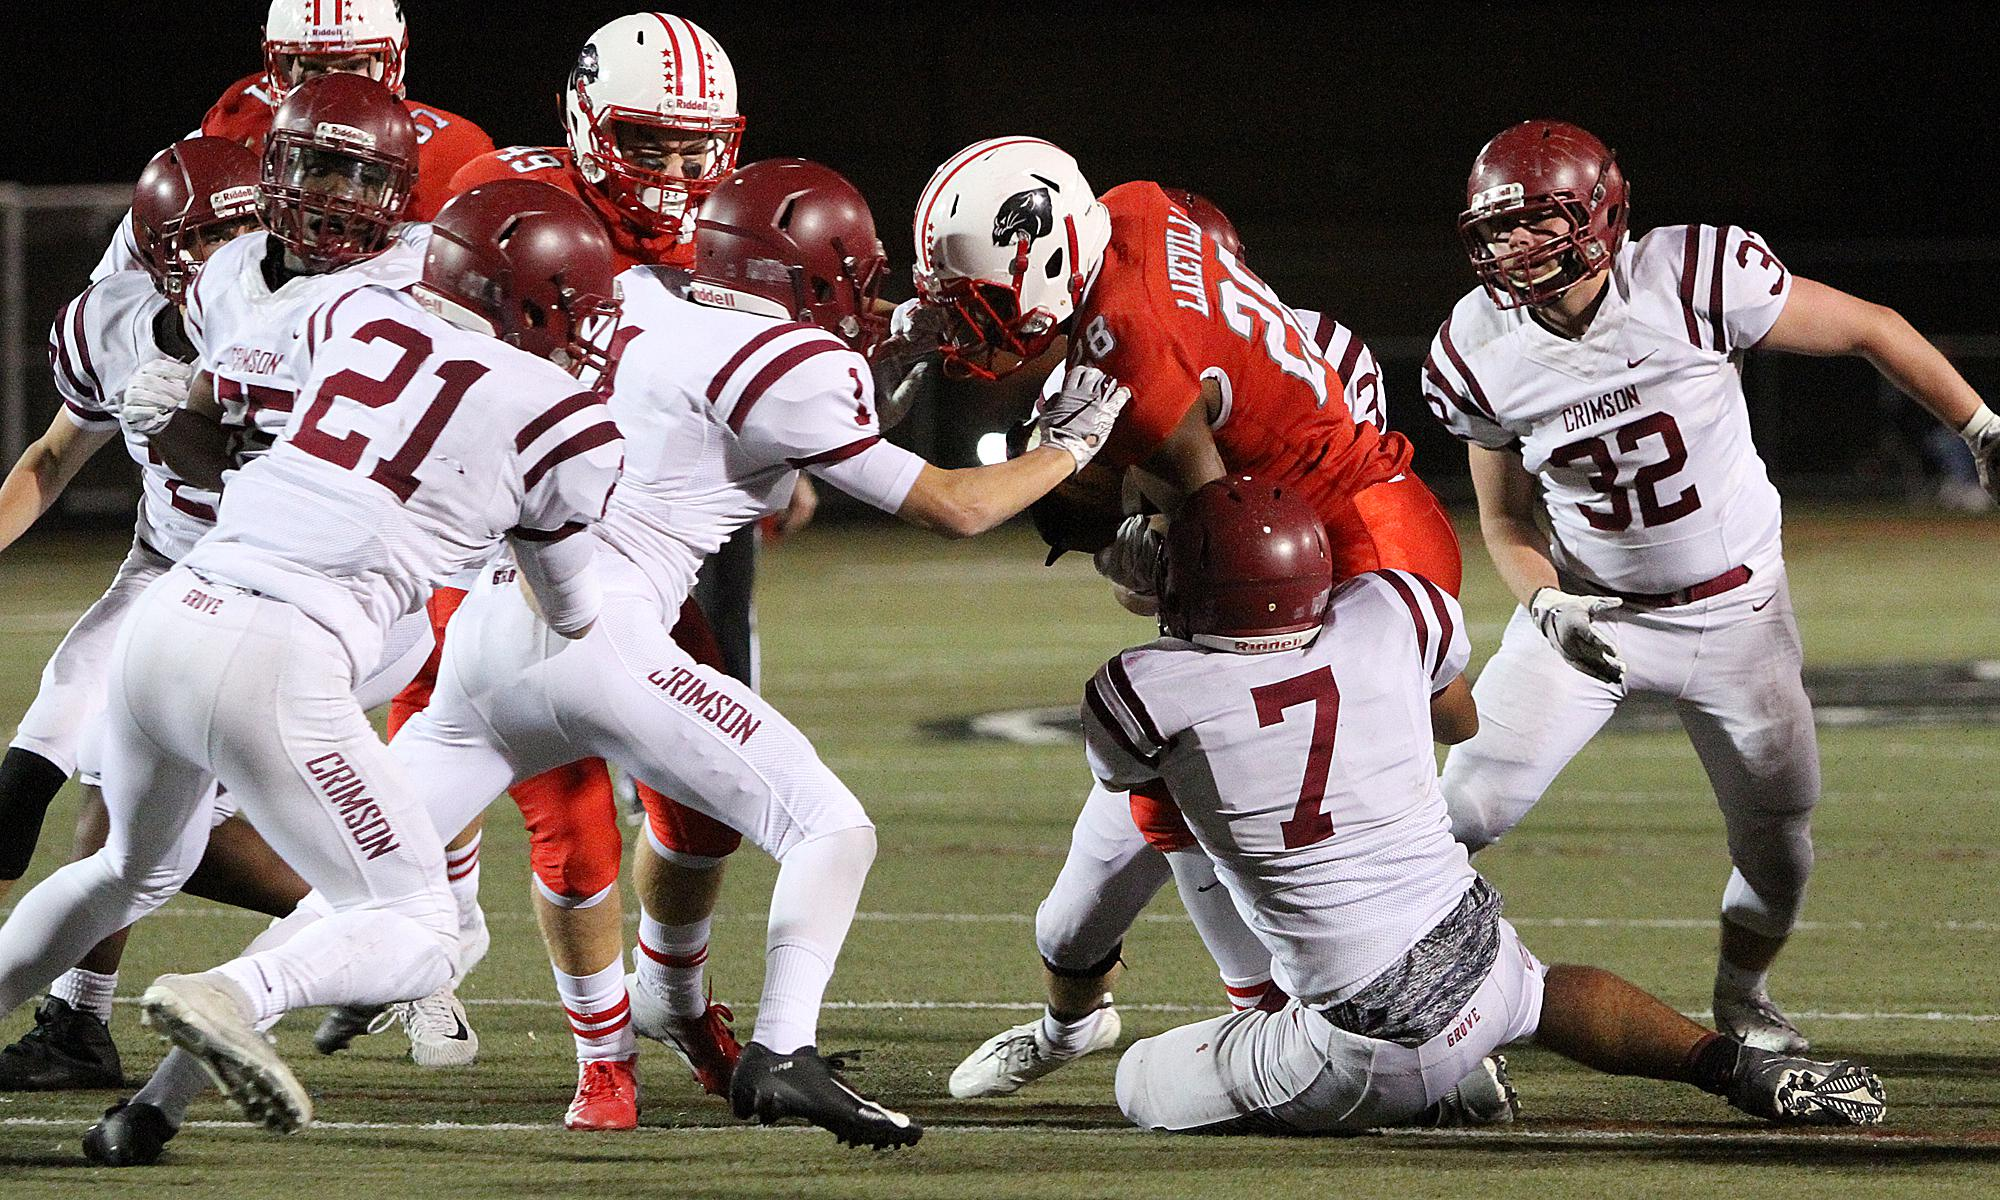 Lakeville North senior running back Brian Curtis Jr. is met at the line of scrimmage late in the first half by a group of Maple Grove defenders, including Anthony Gipson (7) and Aaron Tollefson (11). Photo by Drew Herron, SportsEngine